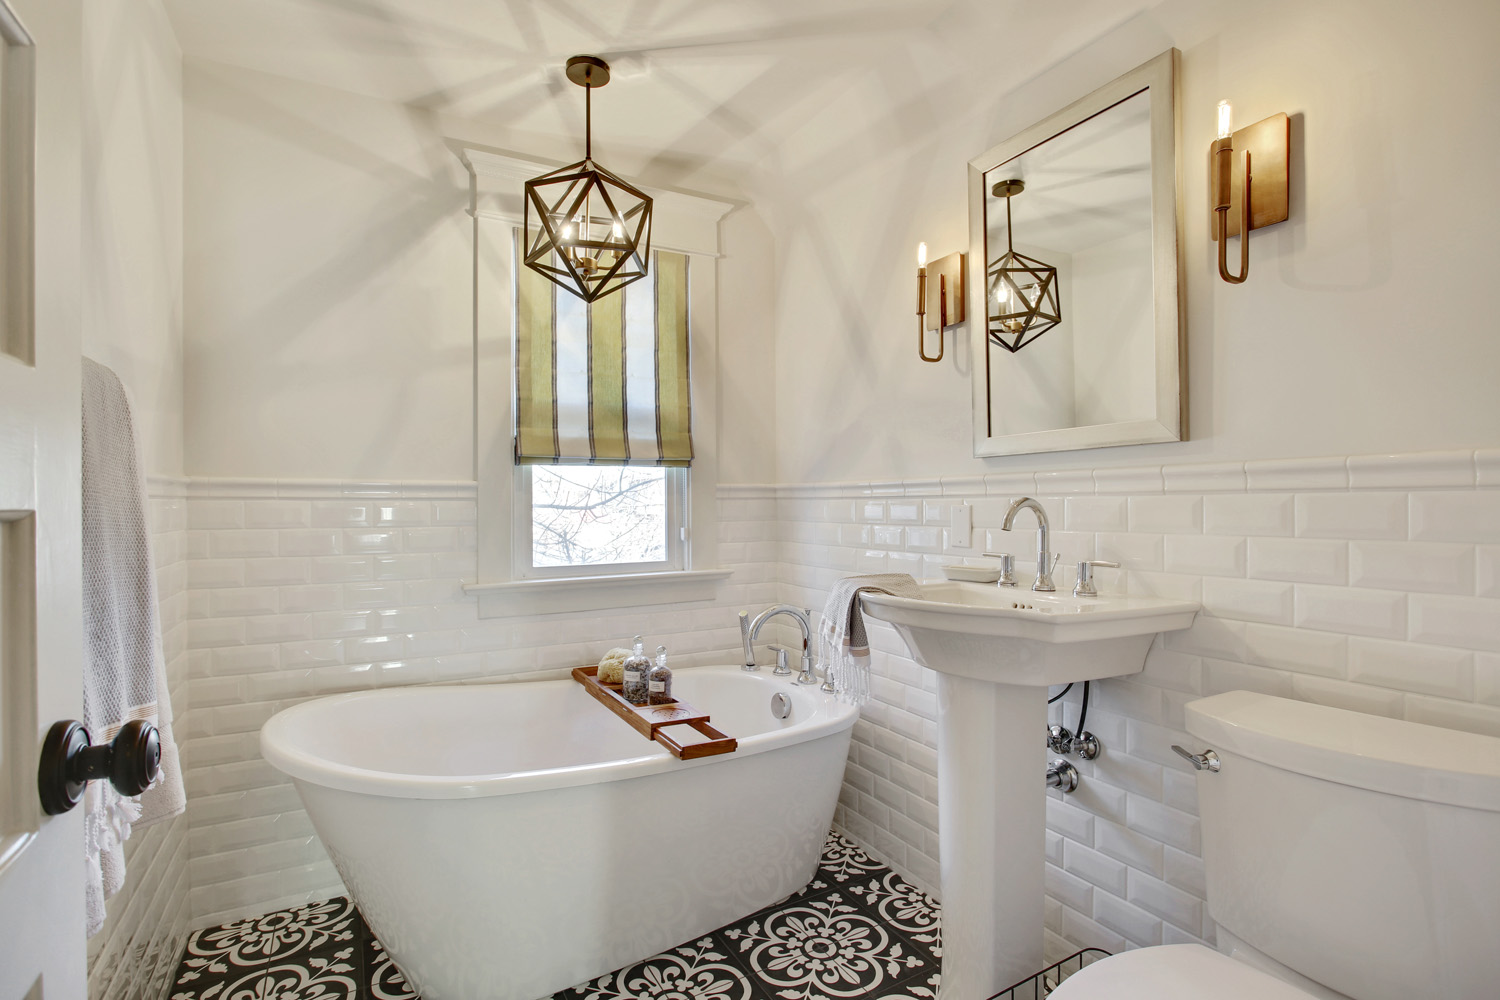 After - Guest bathroom